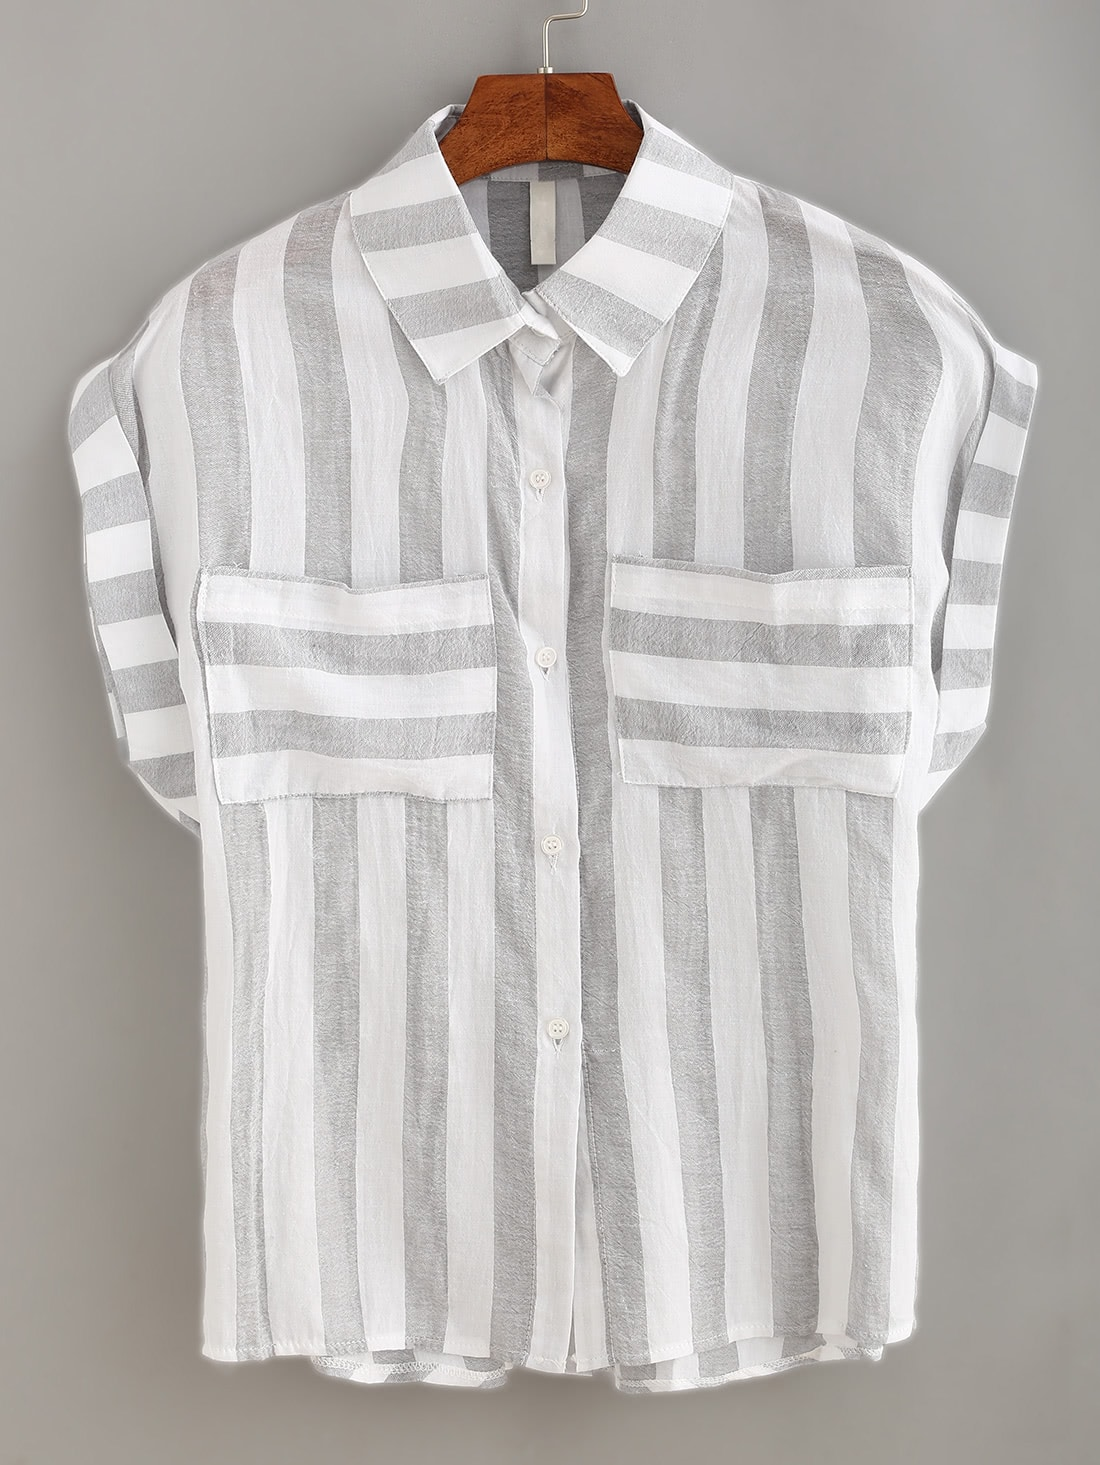 Mixed Striped Dual Pocket BlouseMixed Striped Dual Pocket Blouse<br><br>color: Multi Color<br>size: one-size